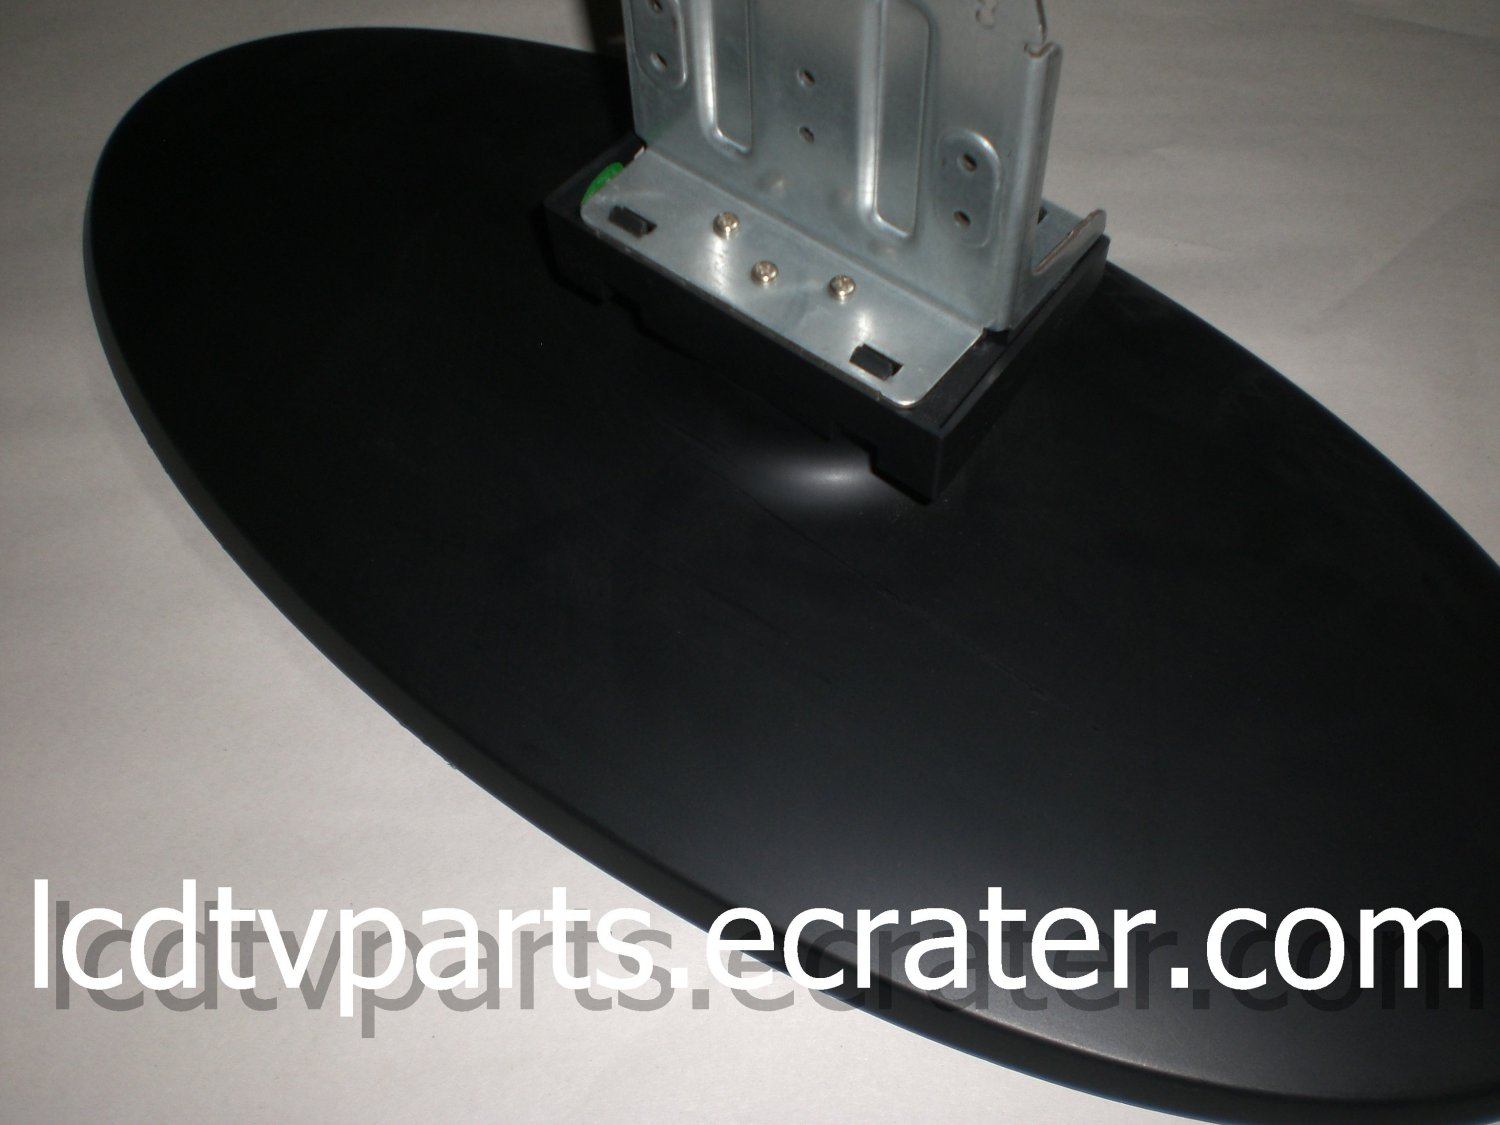 RR0732B03H1, 14325710, LCD TV Pedestal base Stand for ELEMENT 32LE30Q